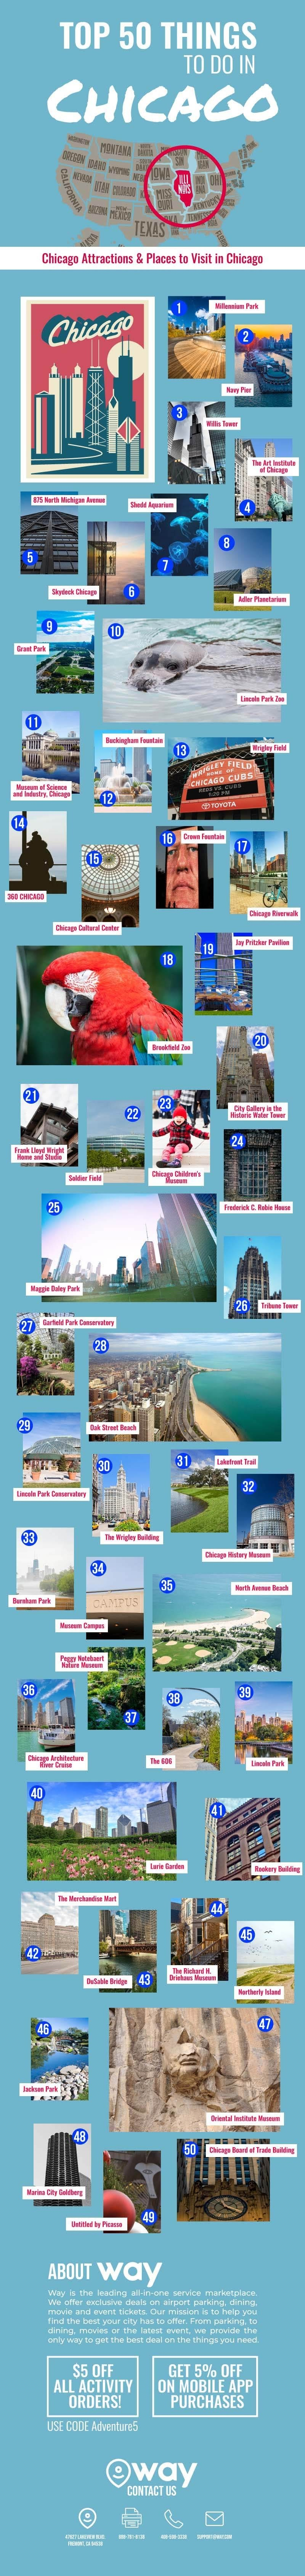 Top 50 Things to Do in Chicago #infographic